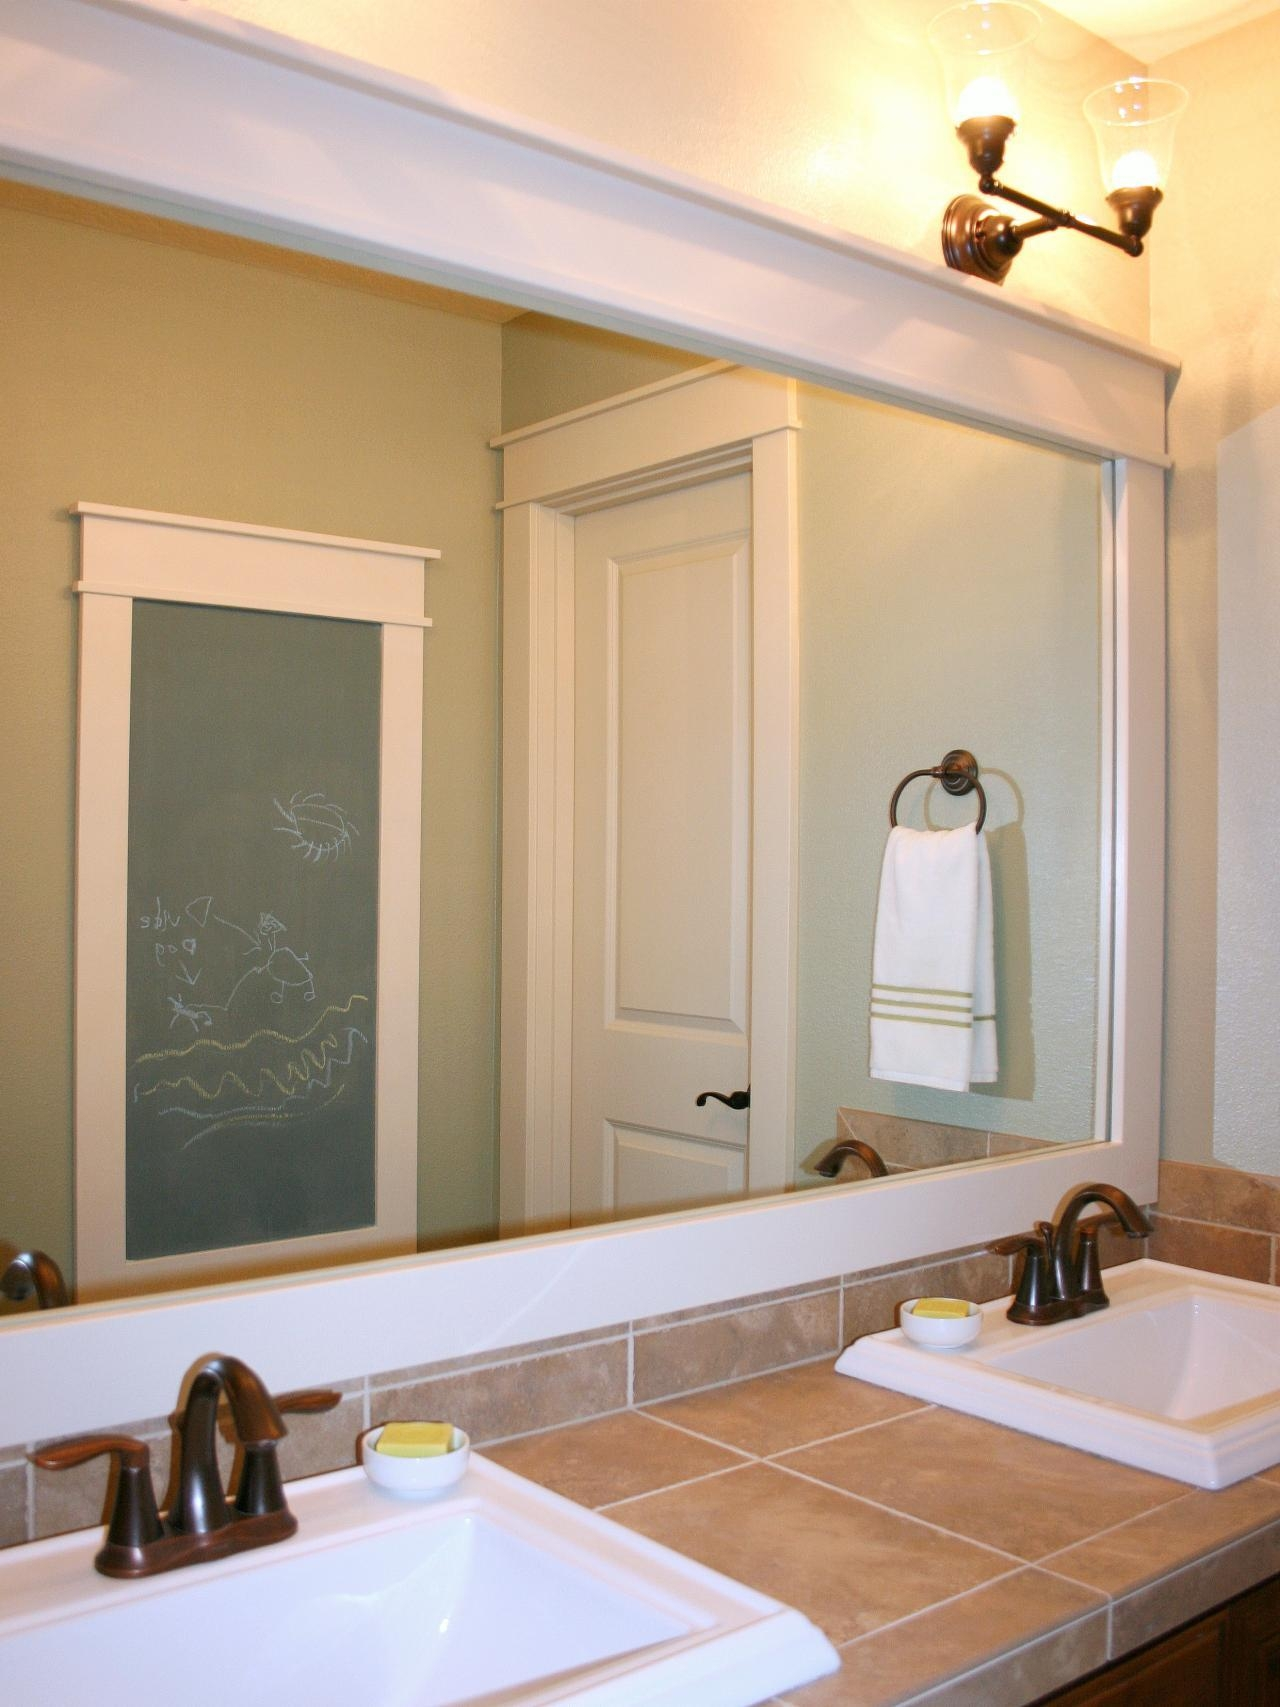 Bathroom Wall Mirror With White Painted Wooden Frame Of Inside Large Bathroom Wall Mirrors (Image 8 of 20)